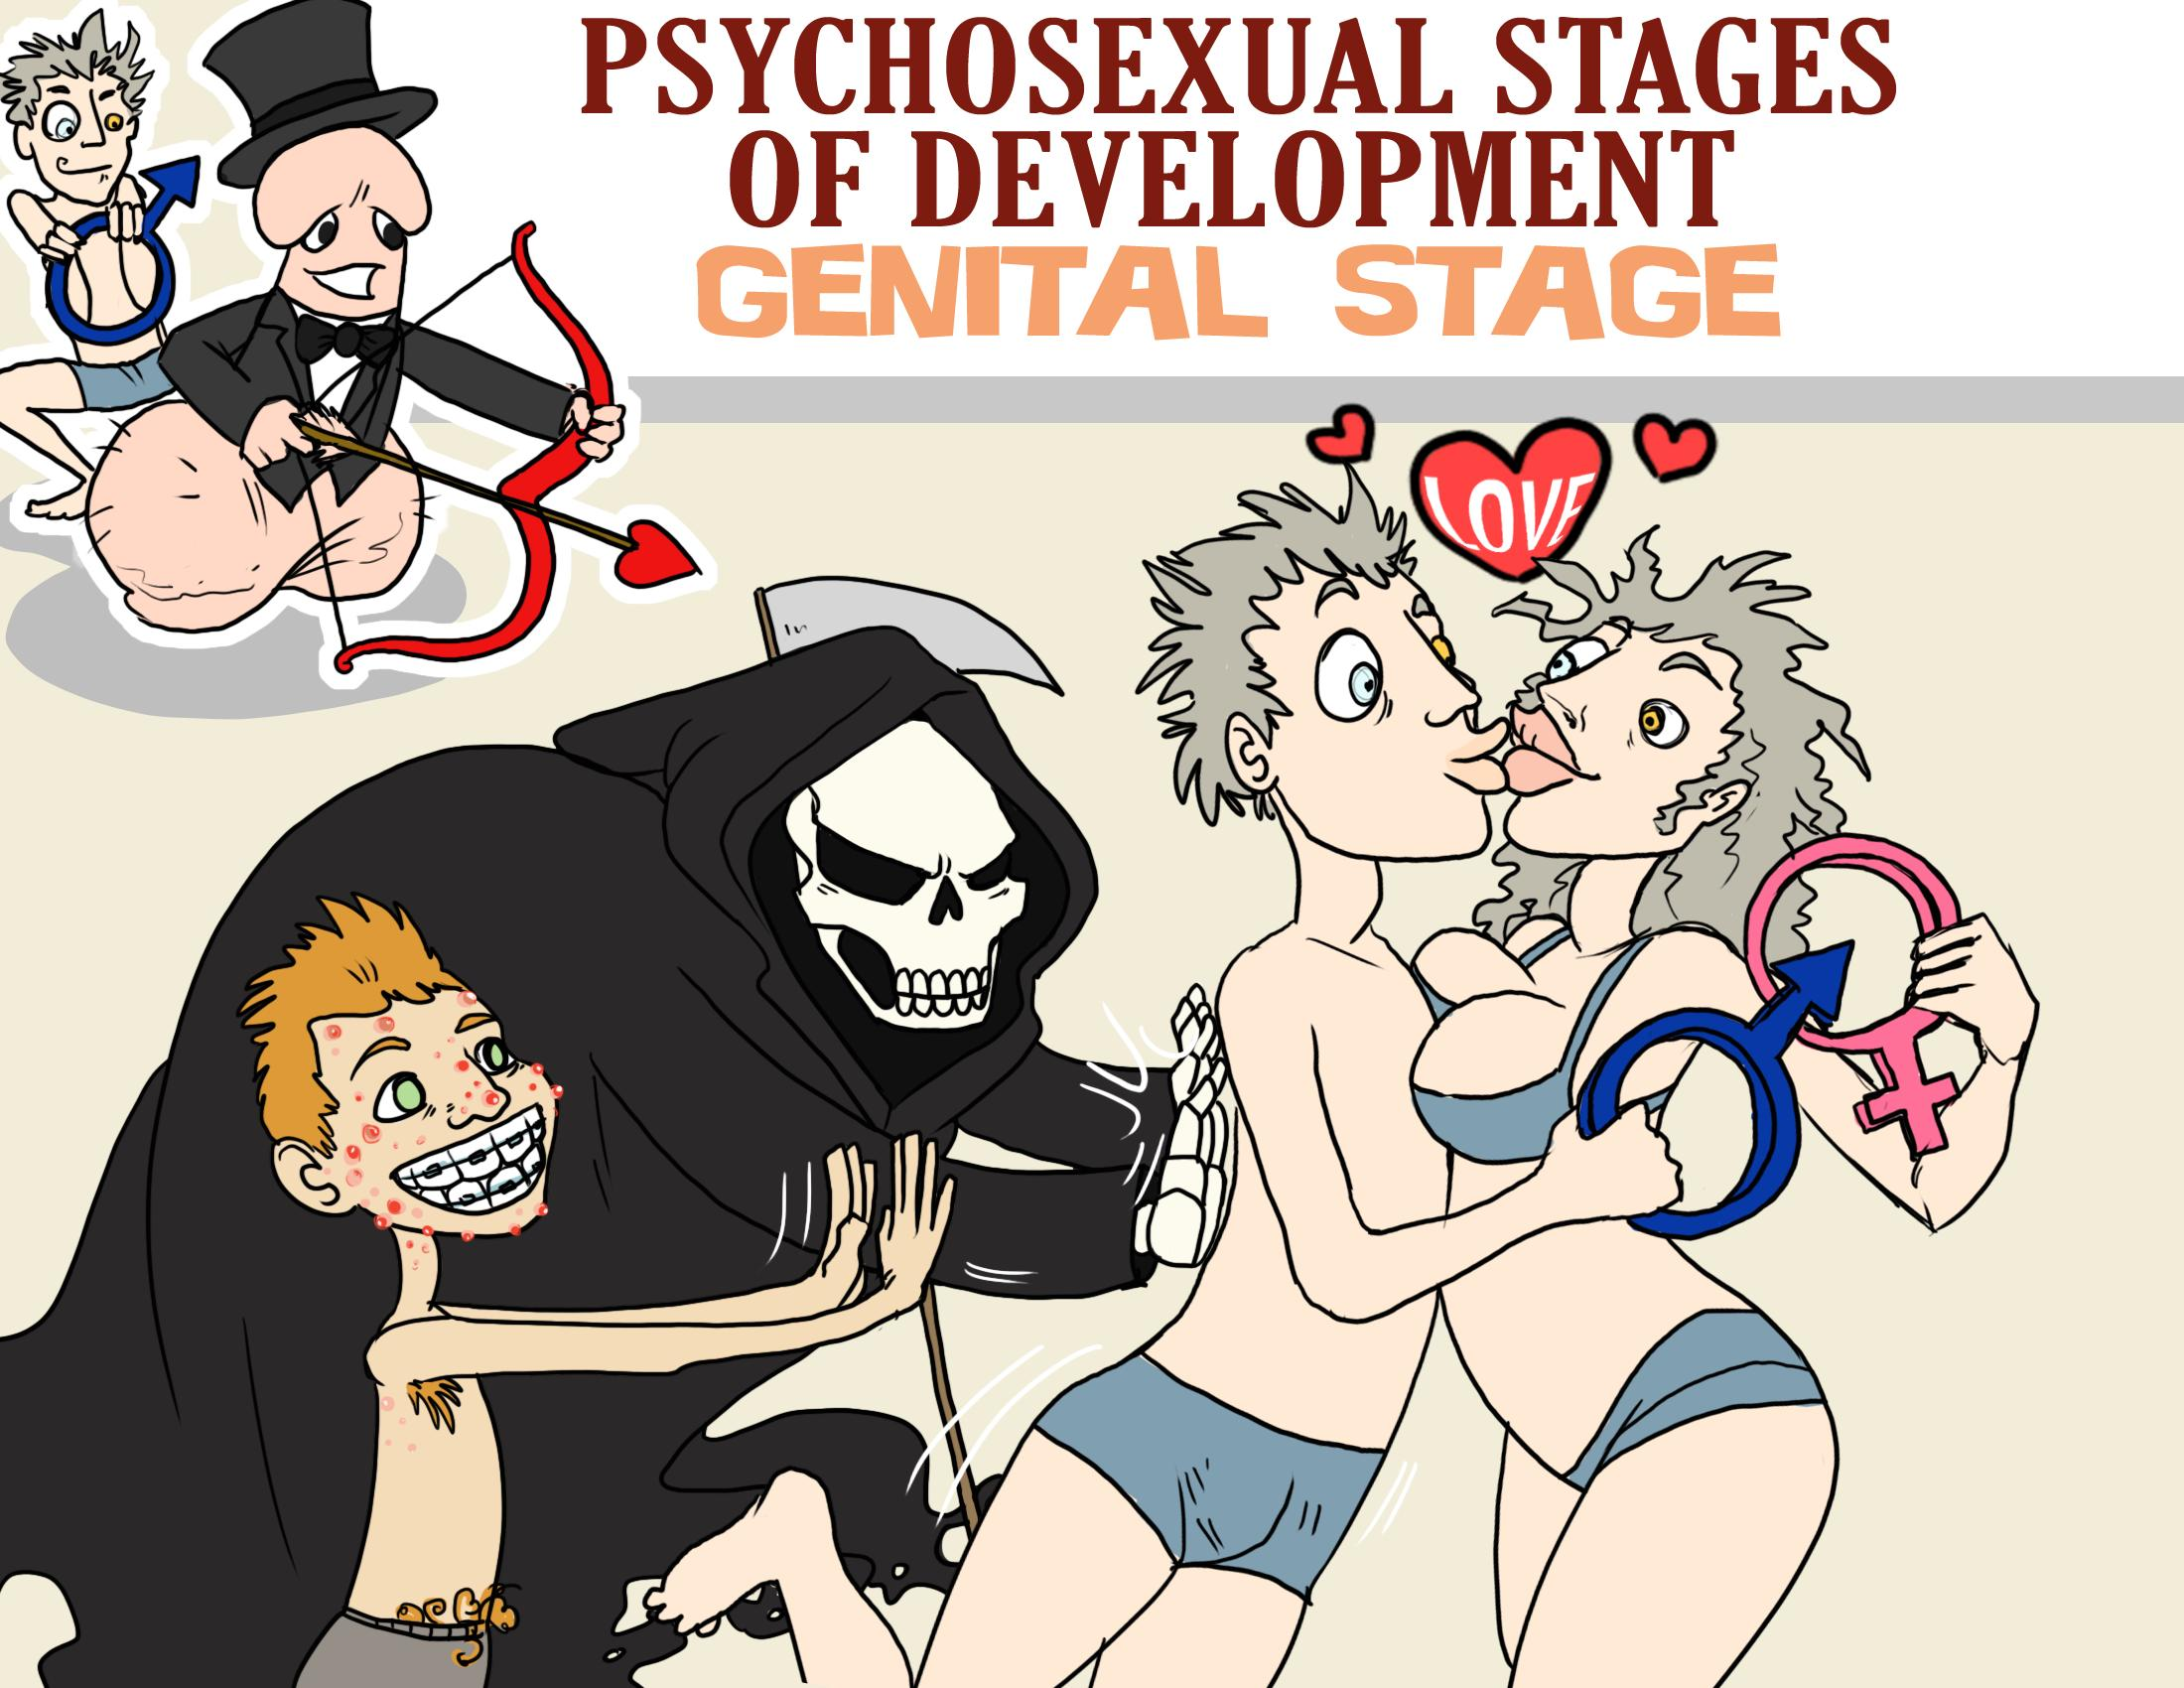 Psychosexual Stages of Development - Genital Stage